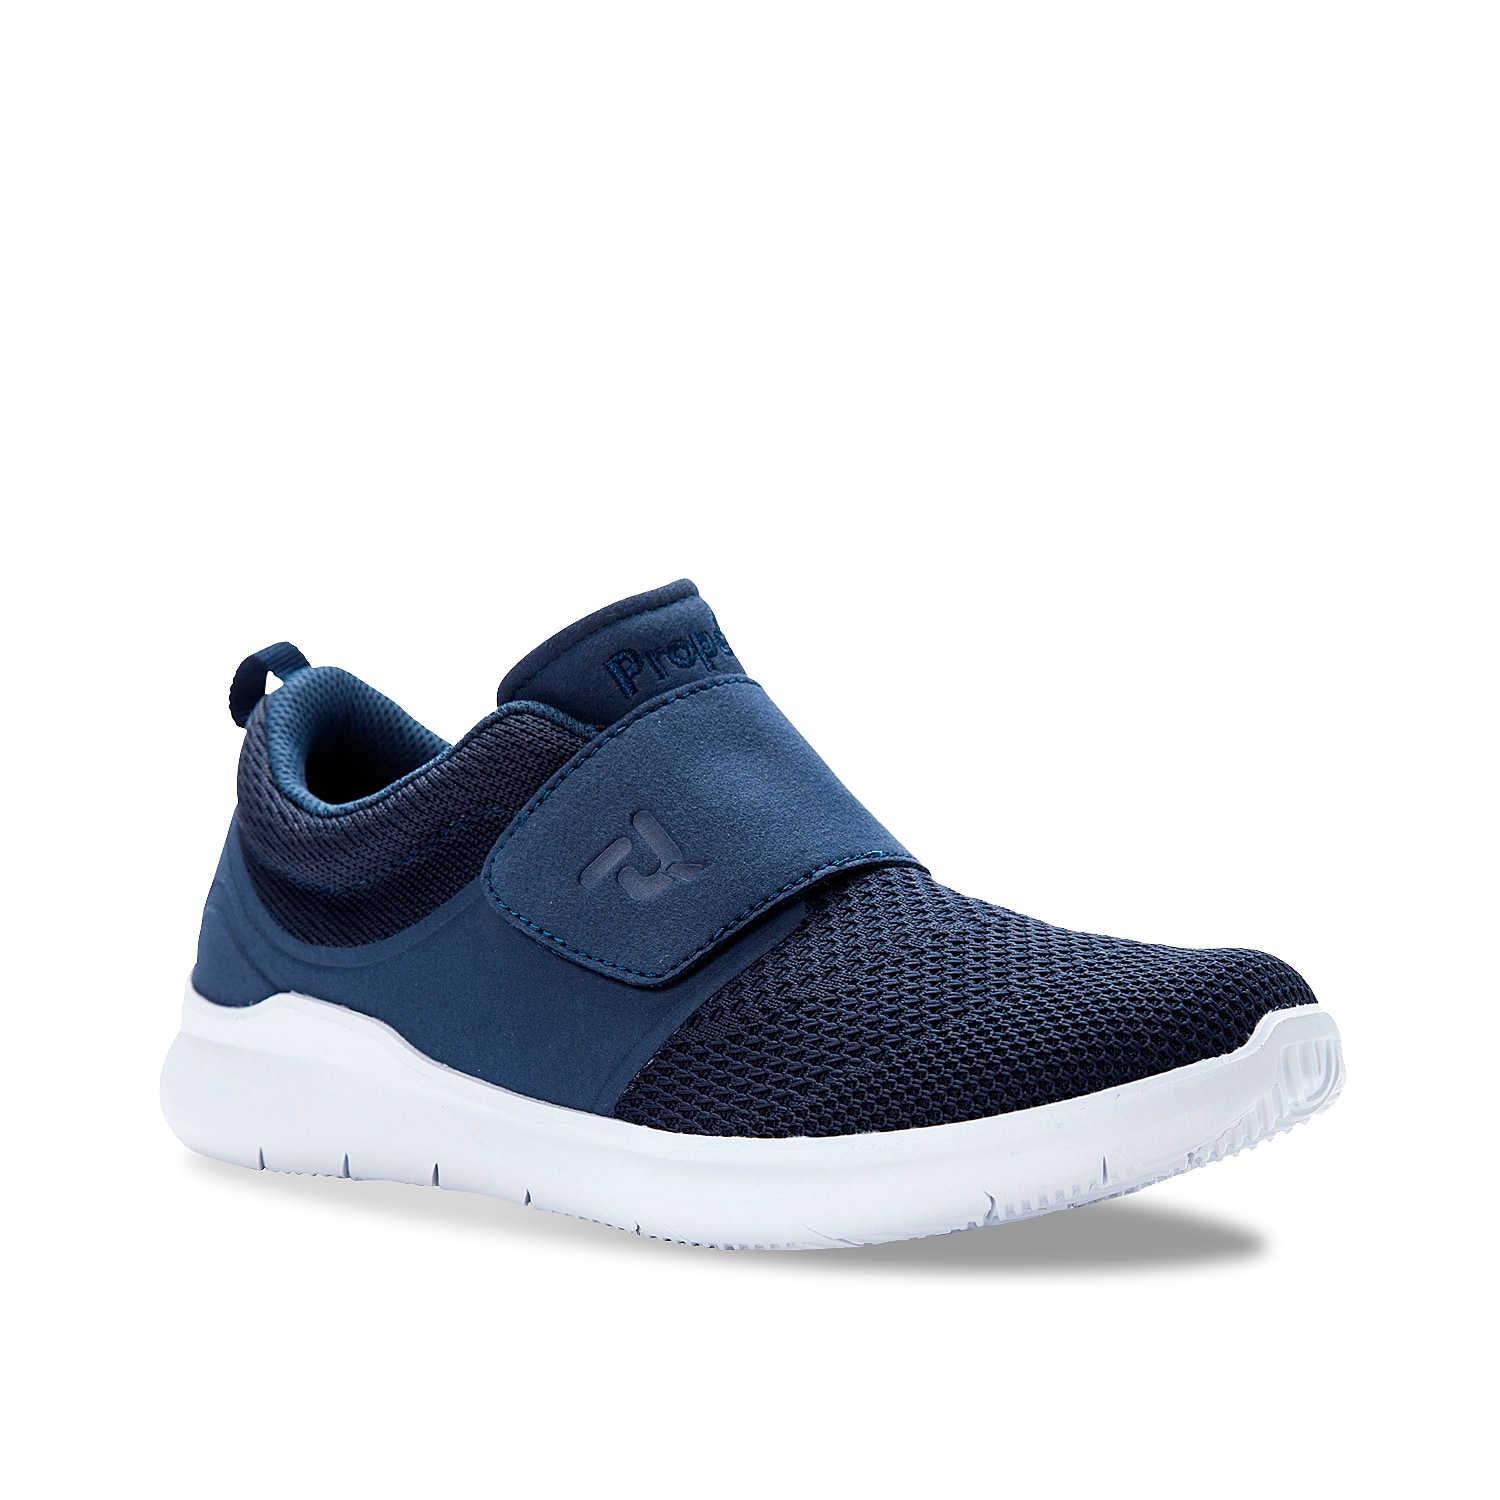 Feel relaxed when wearing the Viator Strap slip-on walking shoe from Propet. The embedded EVA cushioning and lightweight design will give this men\\\'s walker lasting comfort!